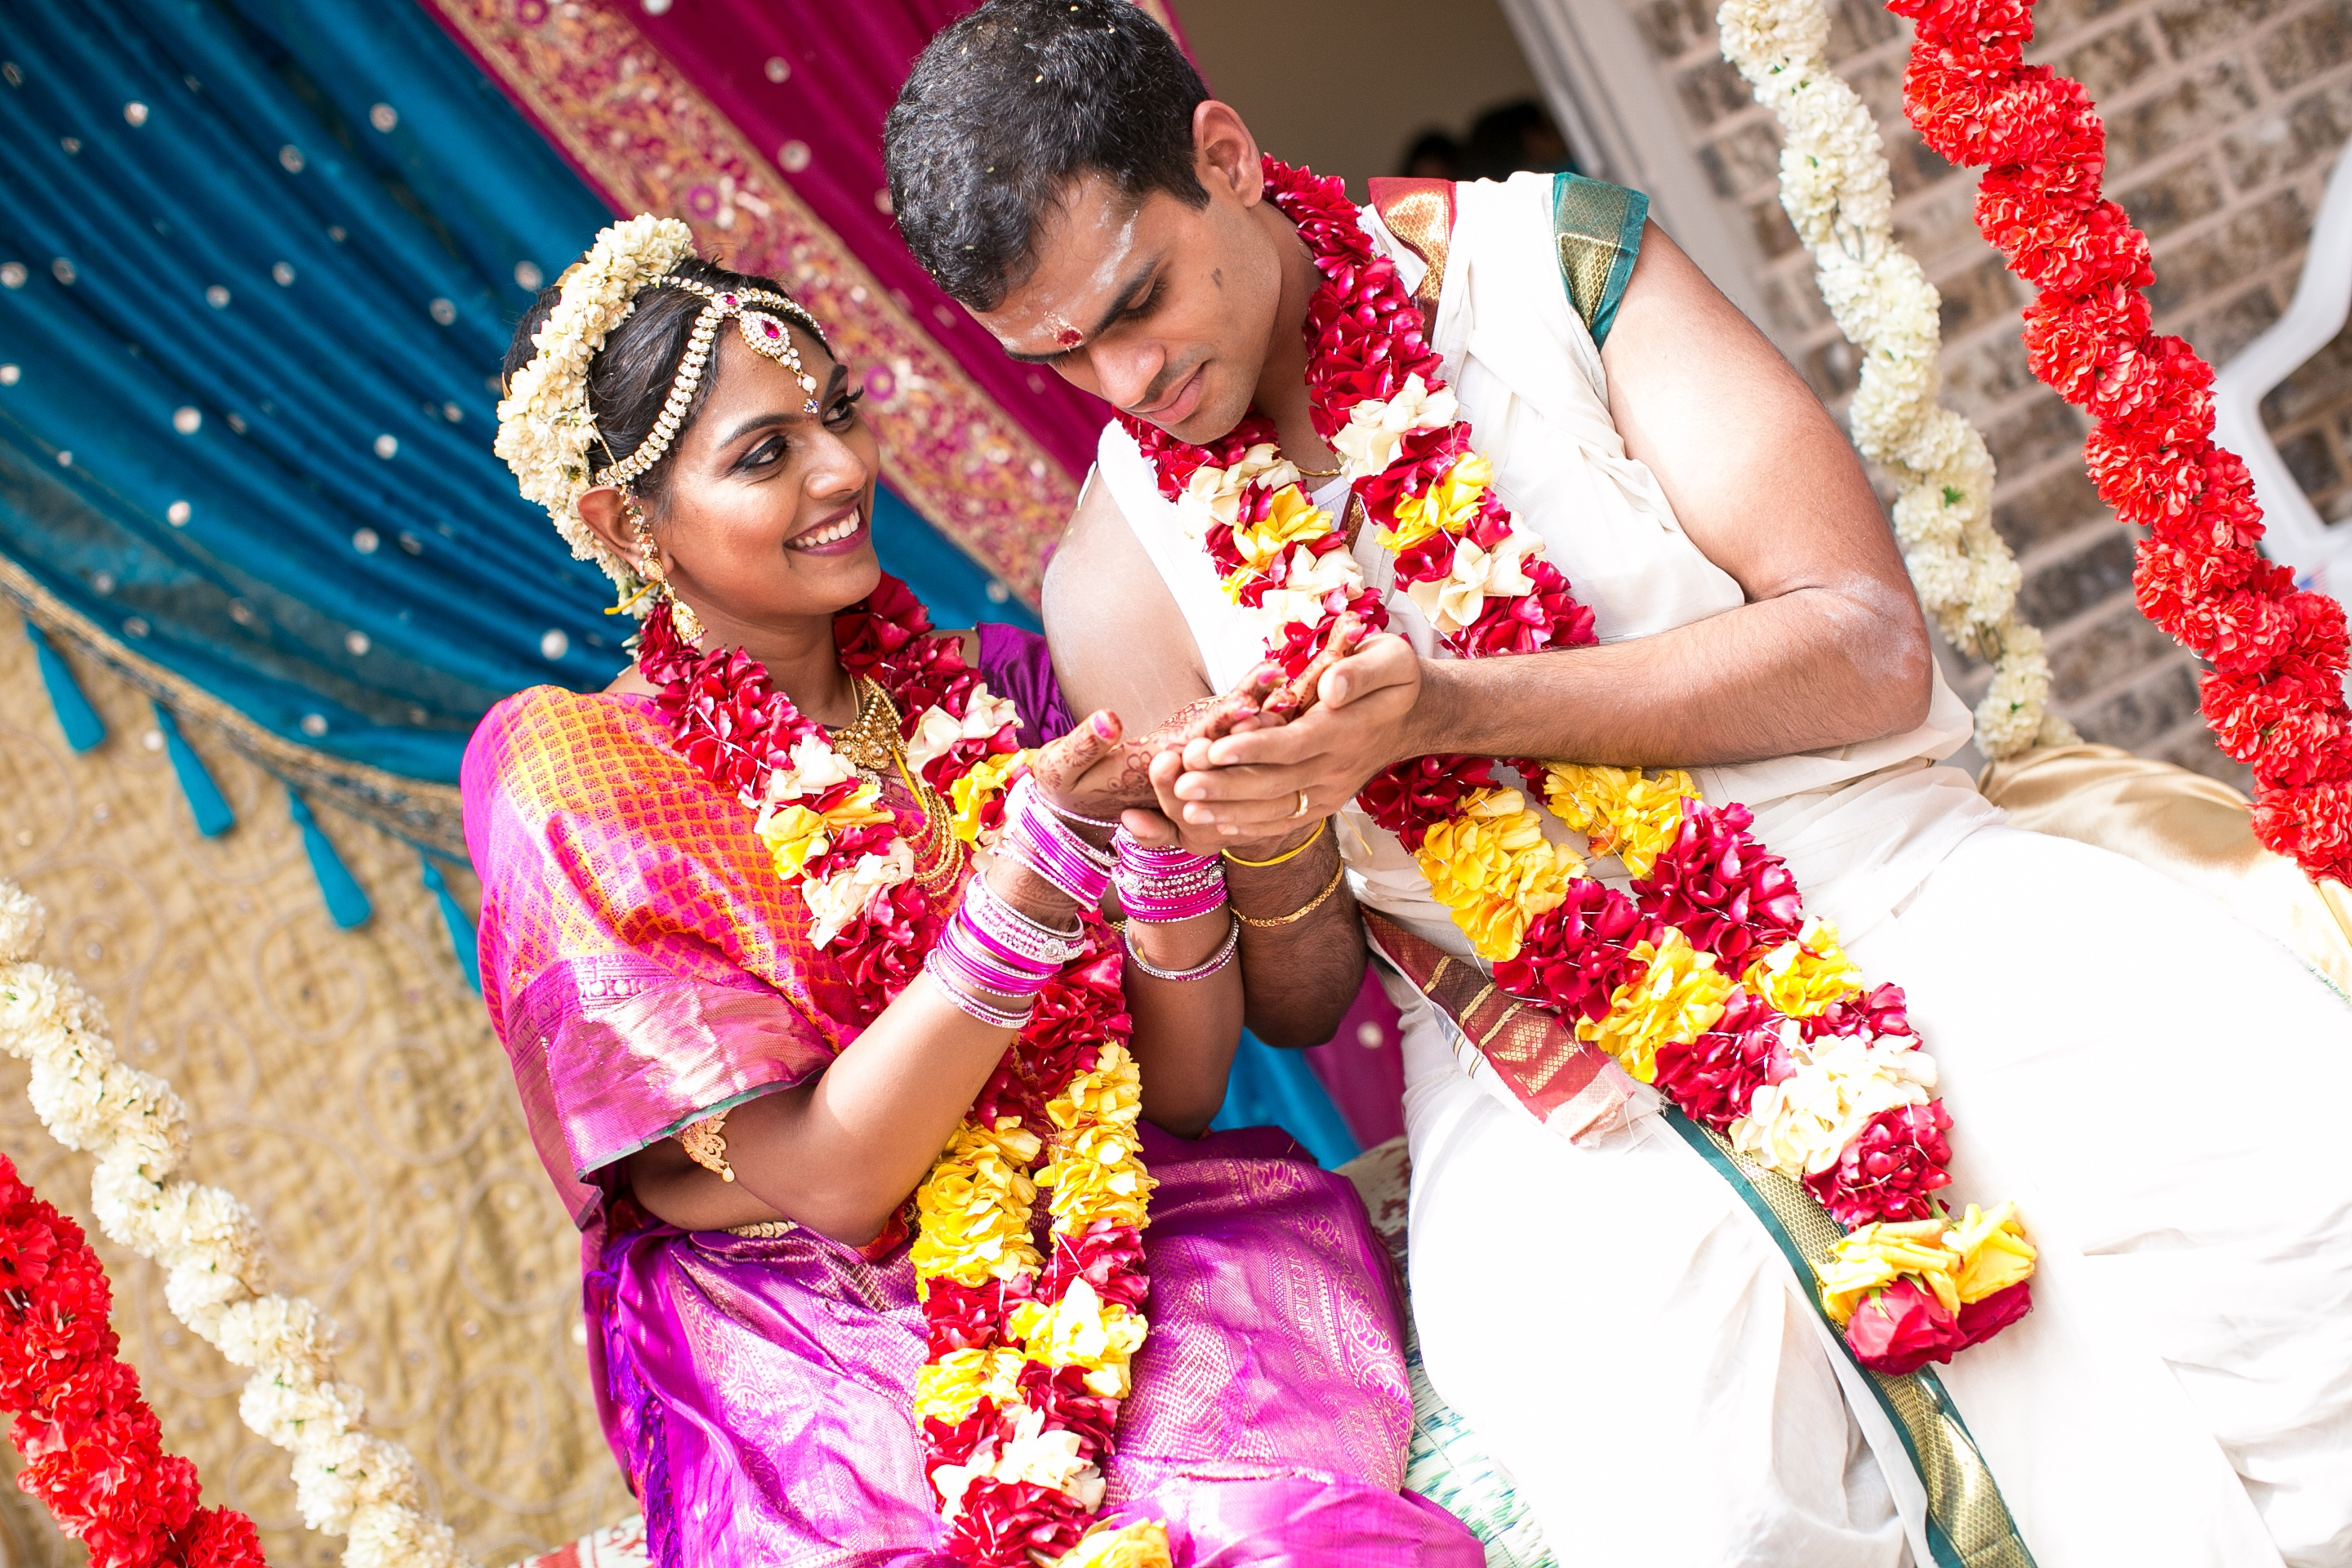 Top 6 Indian Wedding Photo Video Companies in Dallas